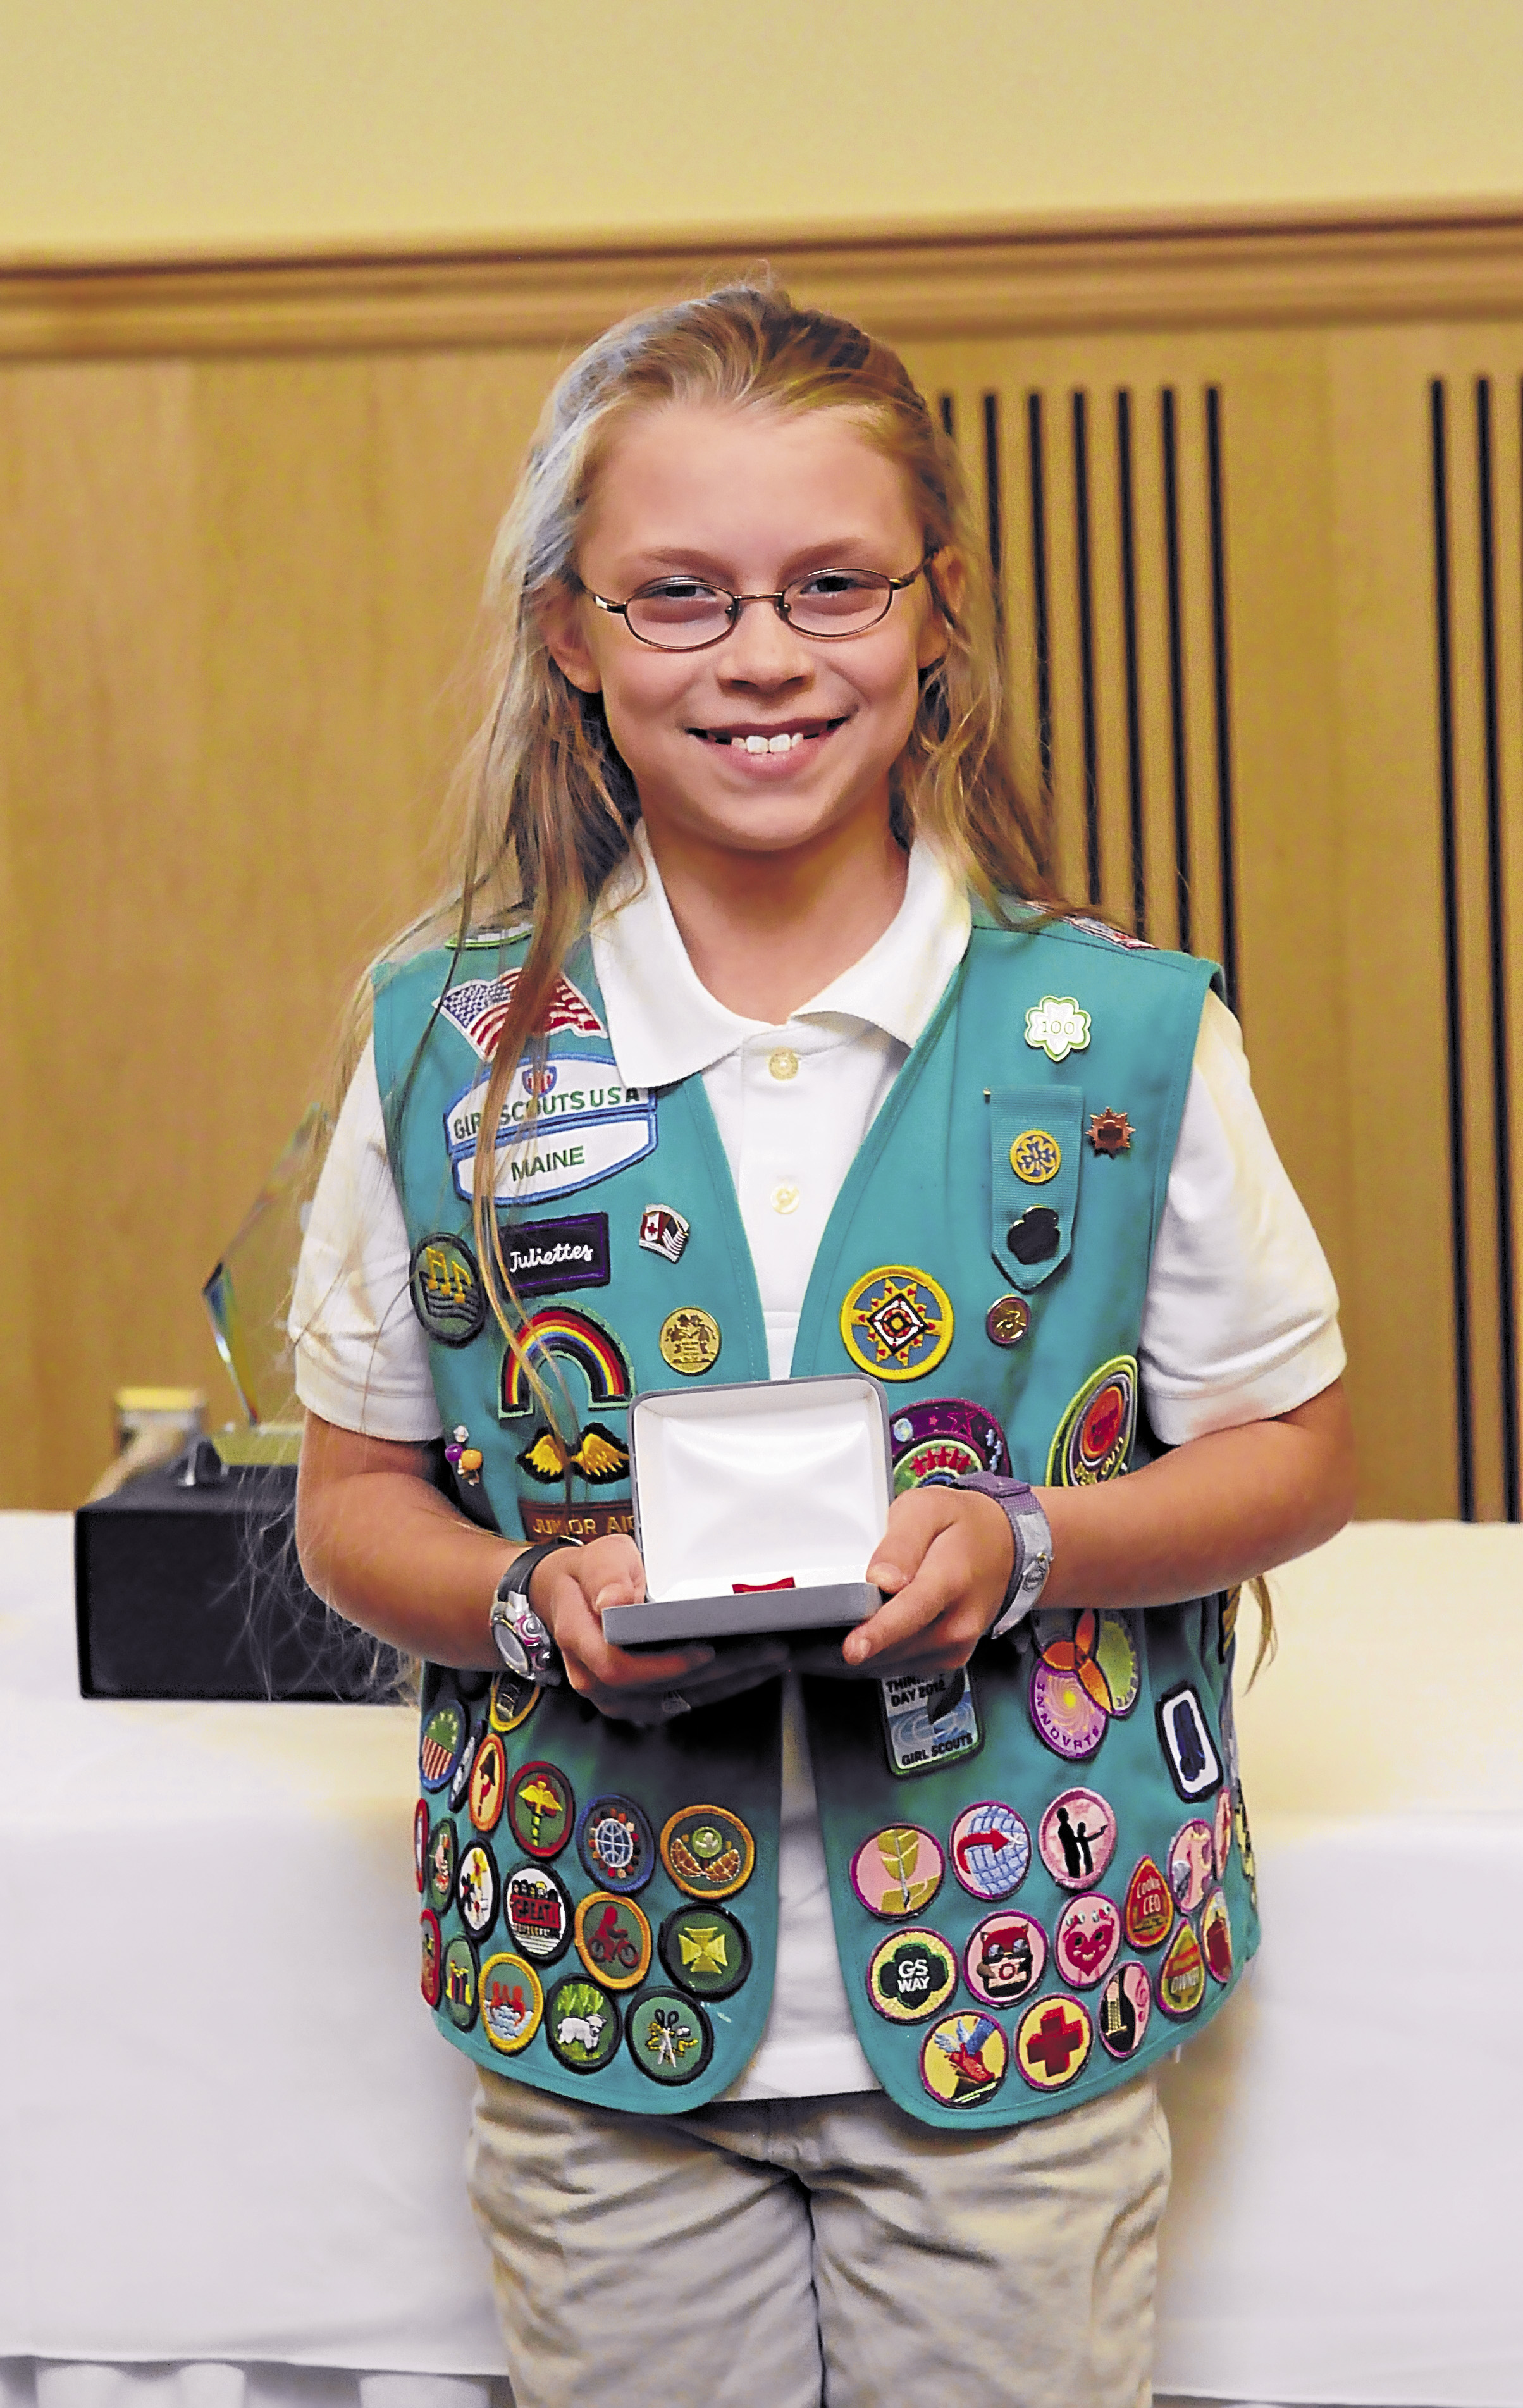 Carmel woman to receive Girl Scouts award